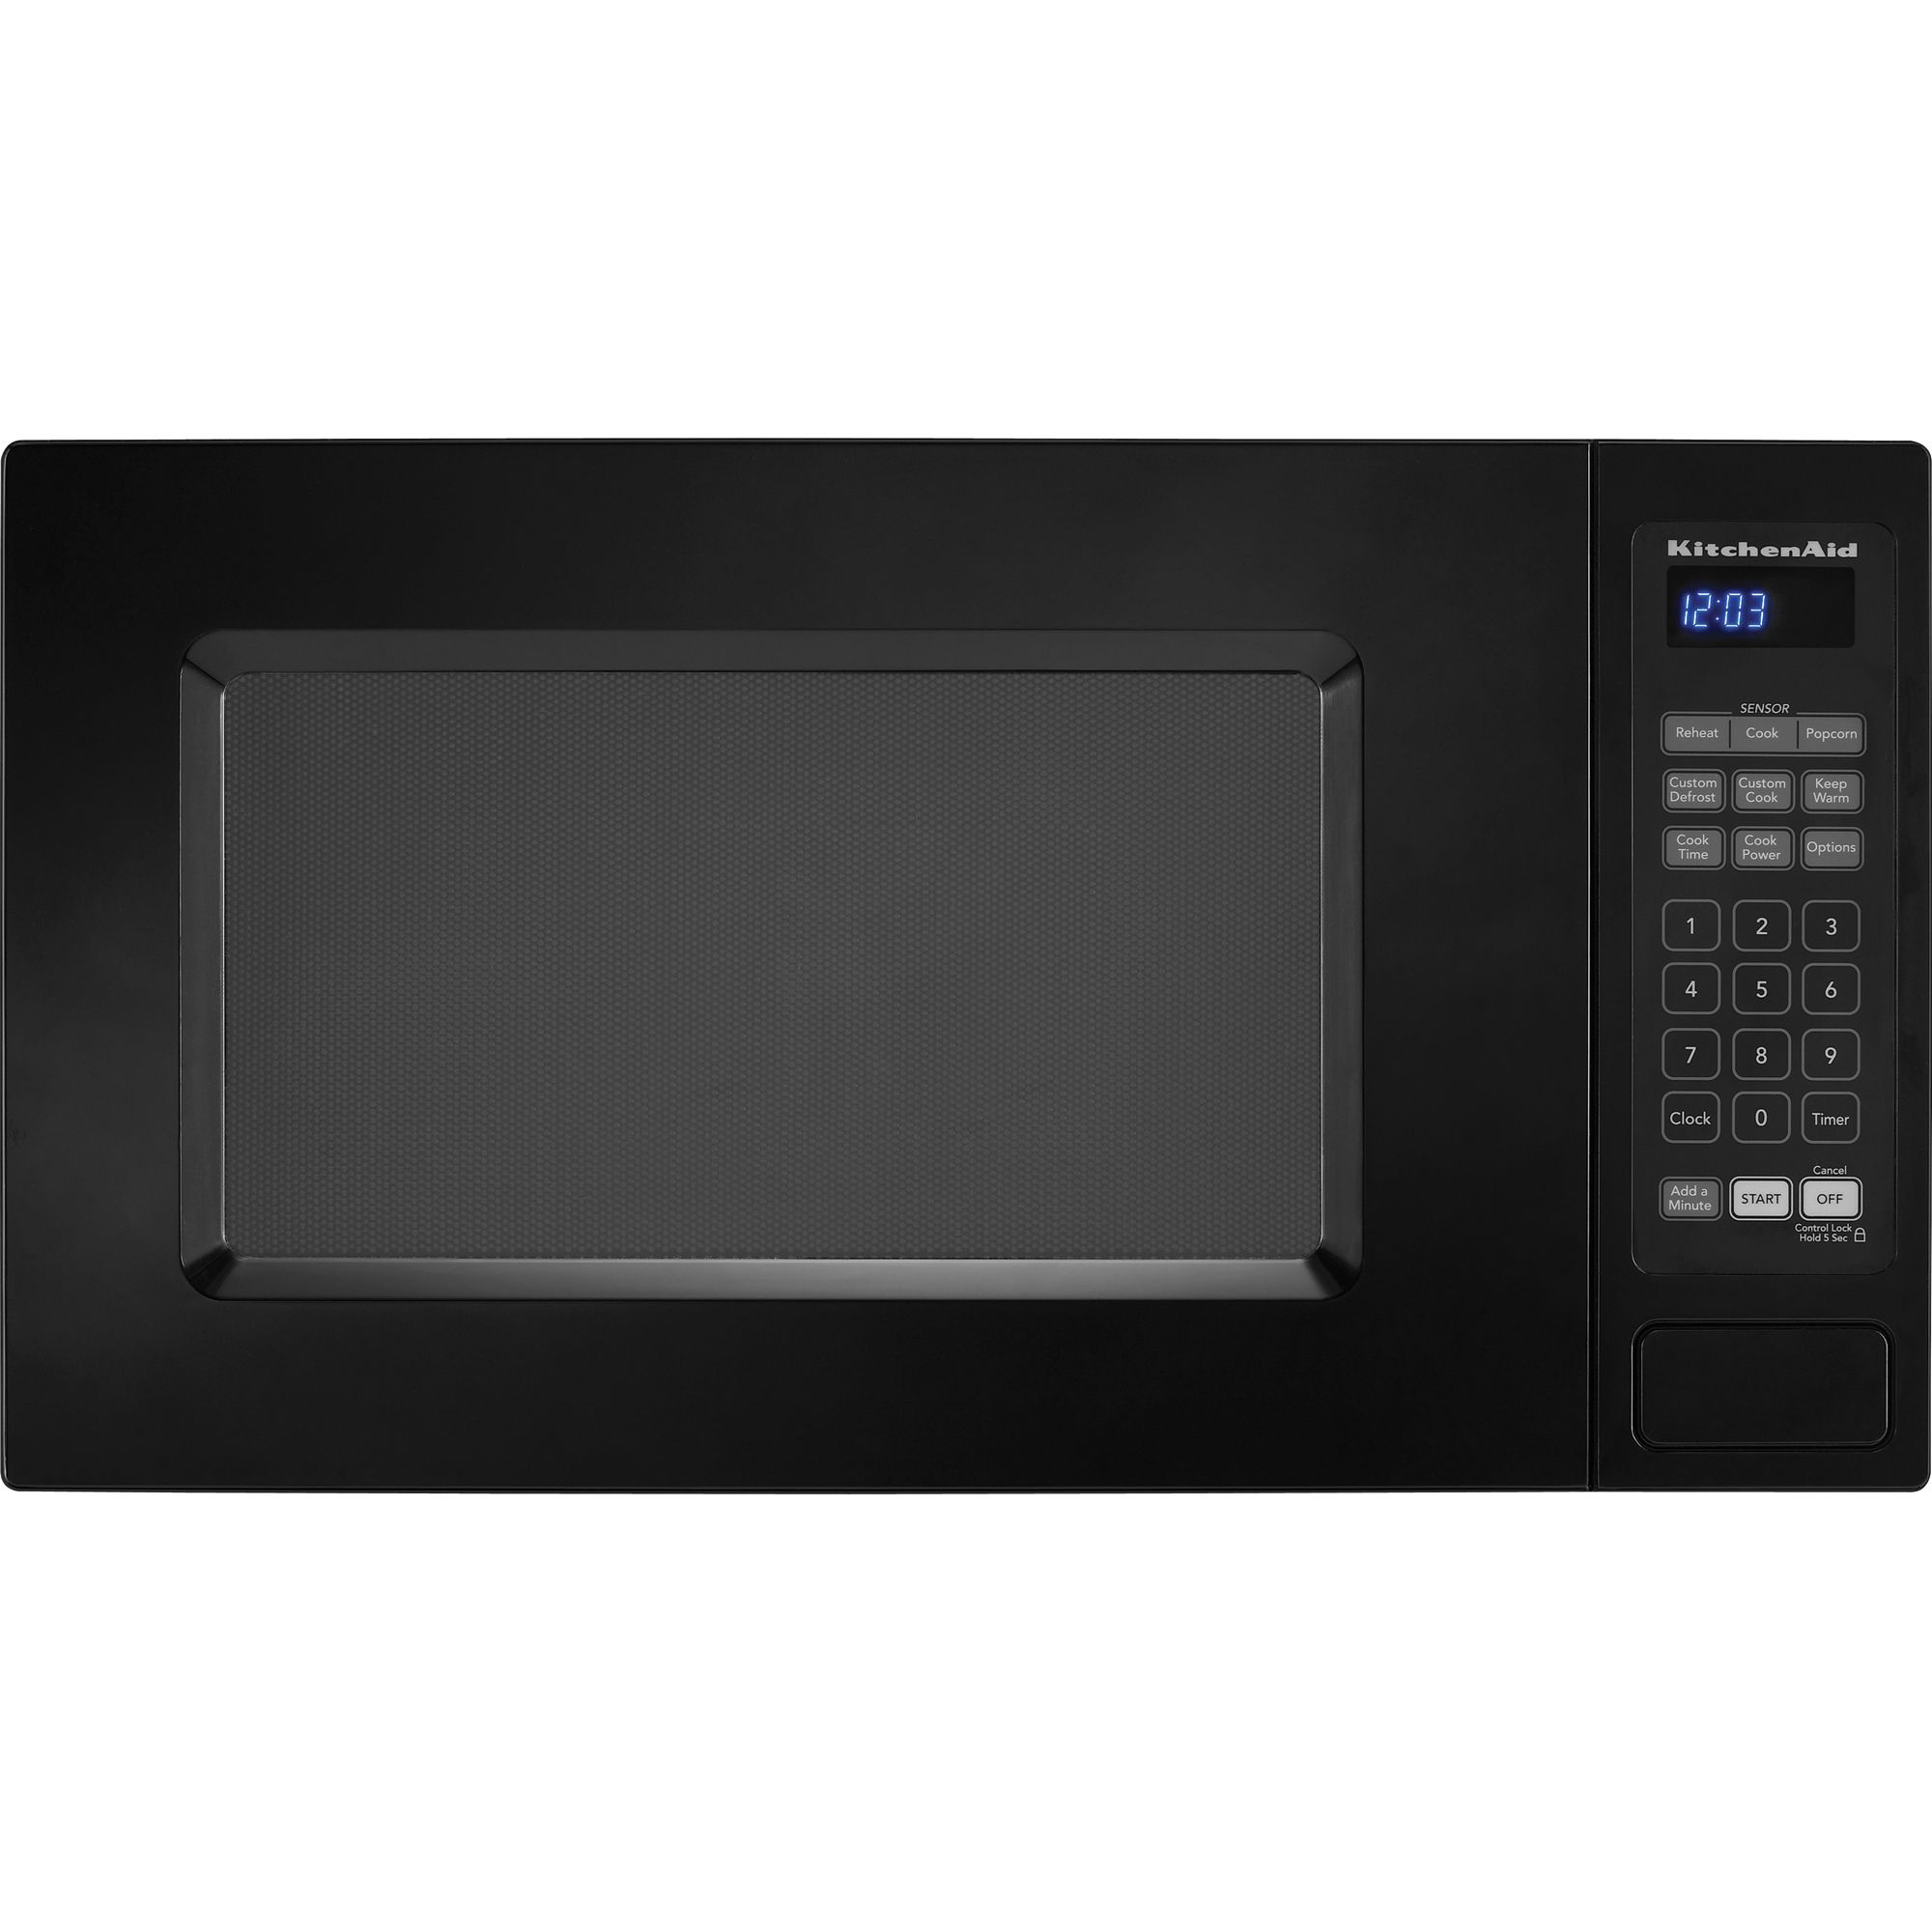 kitchen aid microwaves countertops prices kitchenaid 22 15 cu ft countertop microwave oven